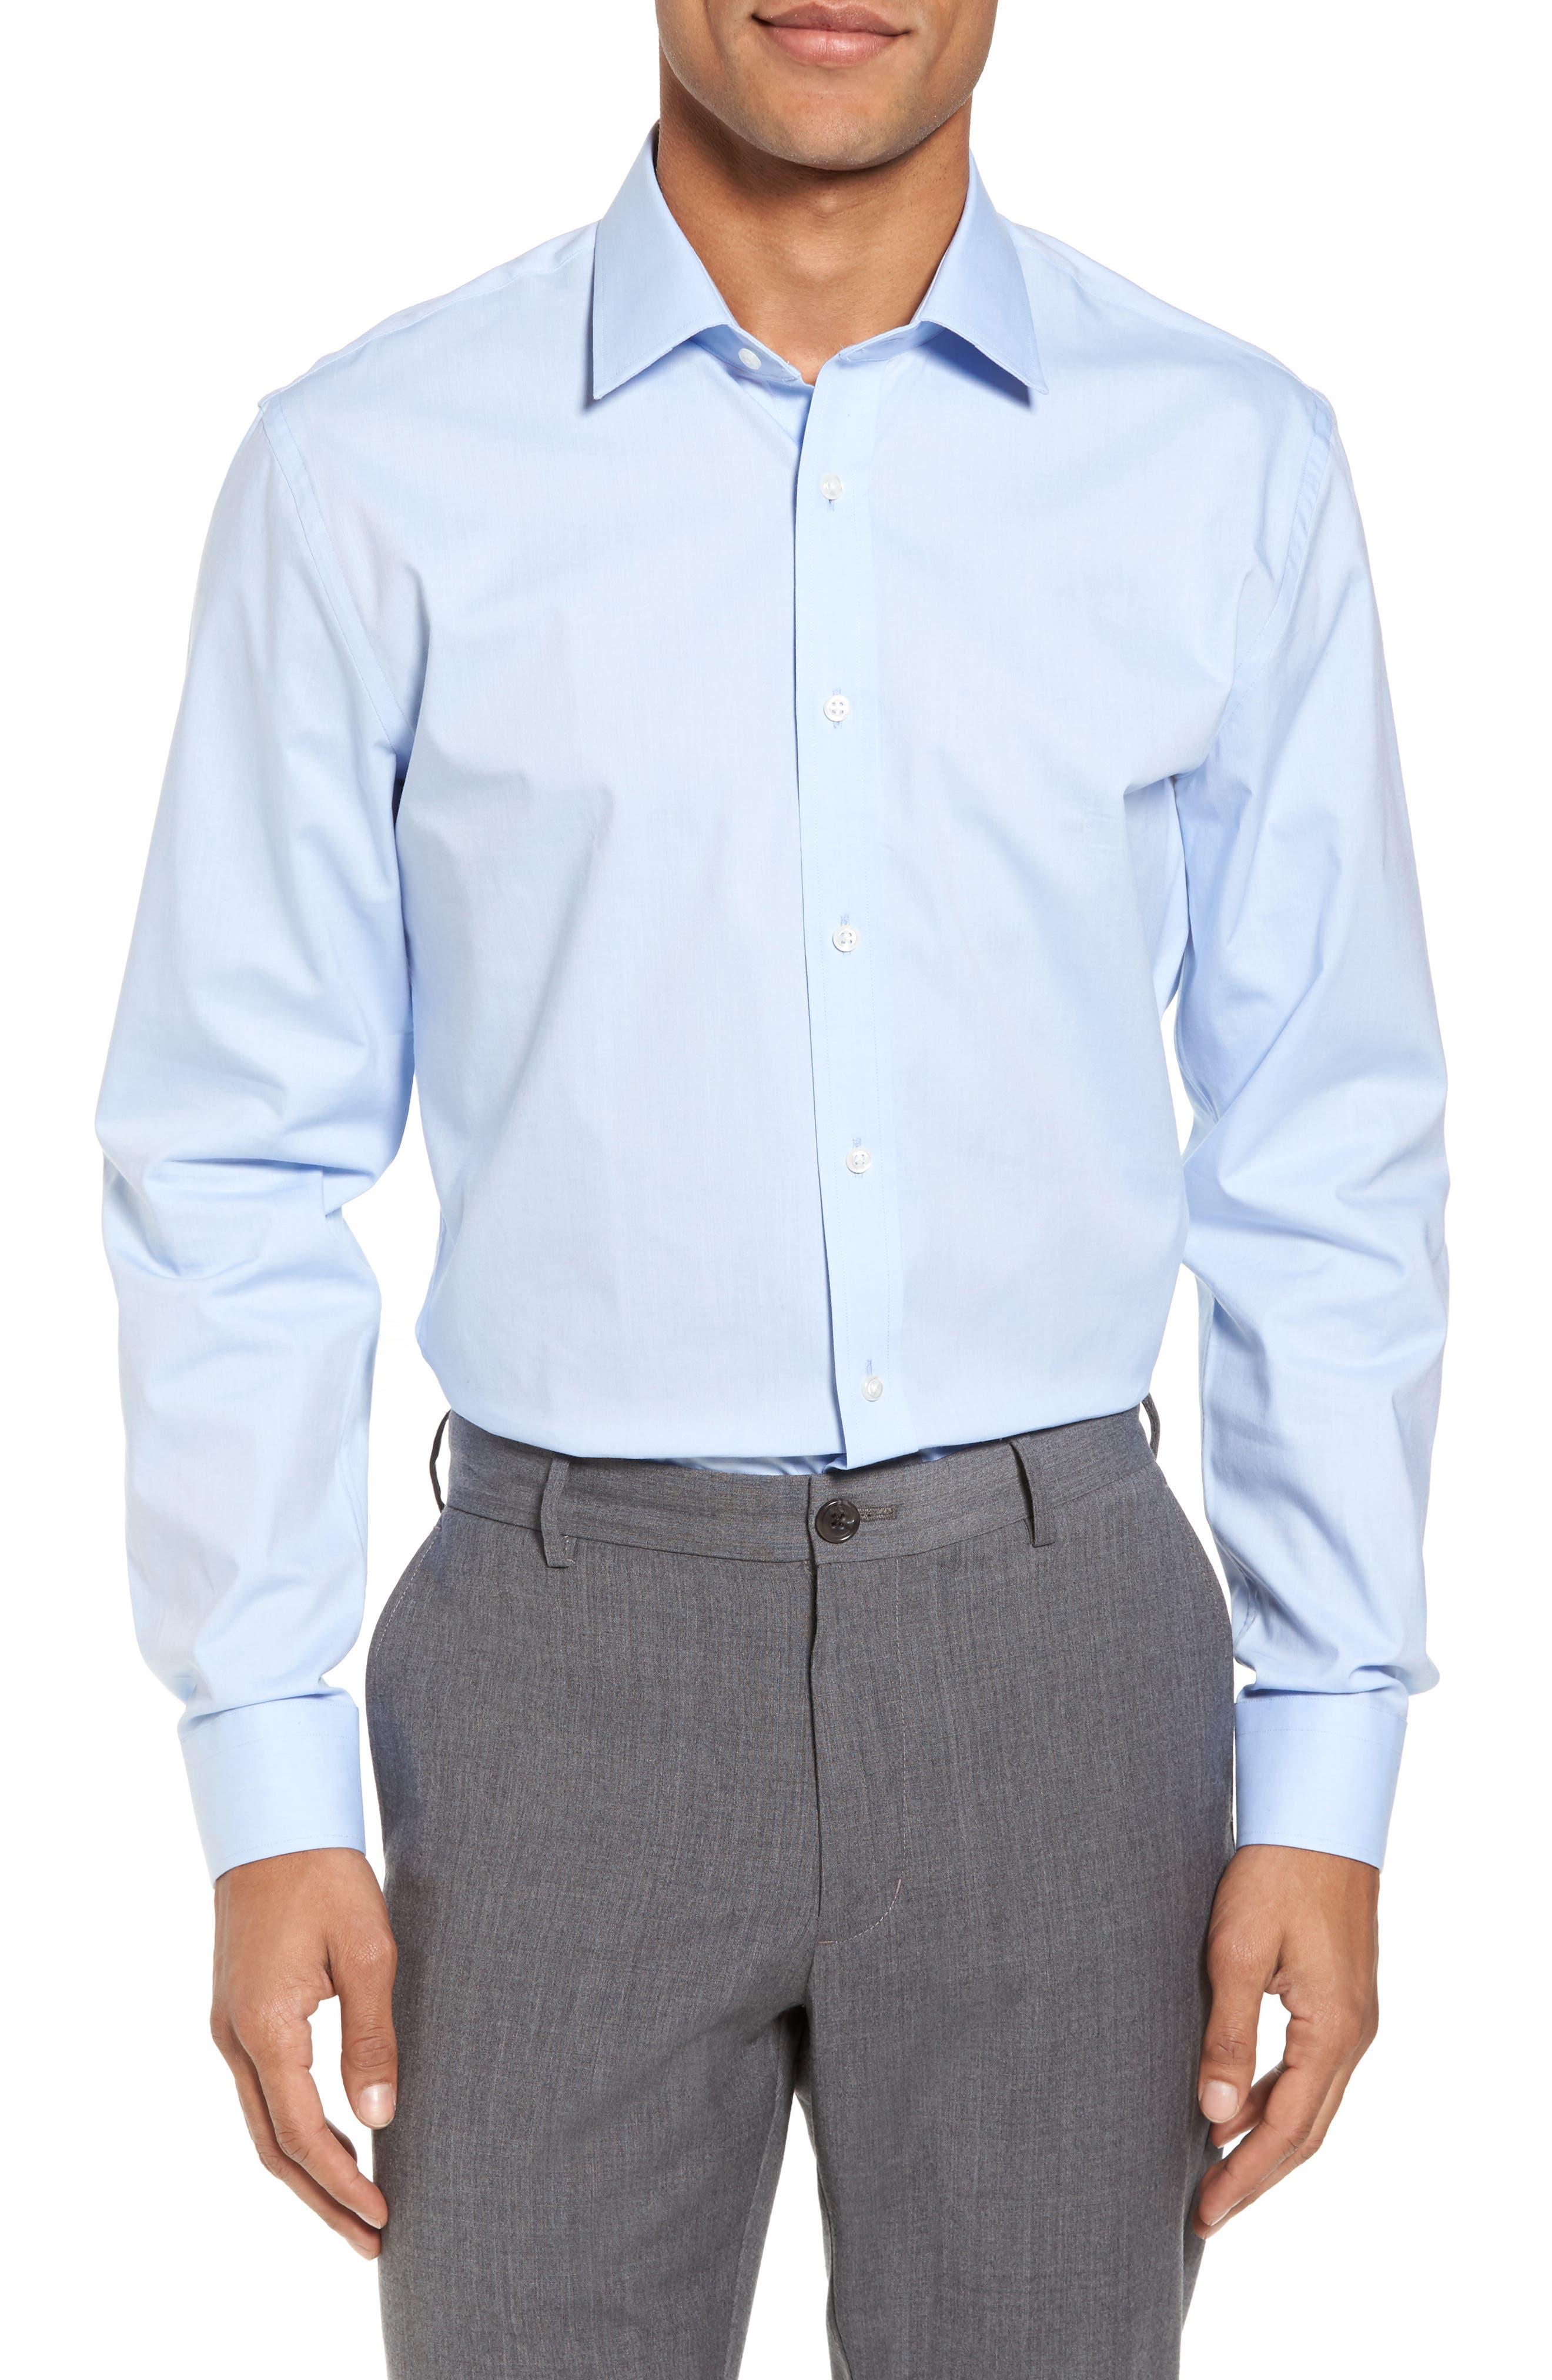 Tech-Smart Trim Fit Stretch Pinpoint Dress Shirt,                             Main thumbnail 1, color,                             Blue Xenon